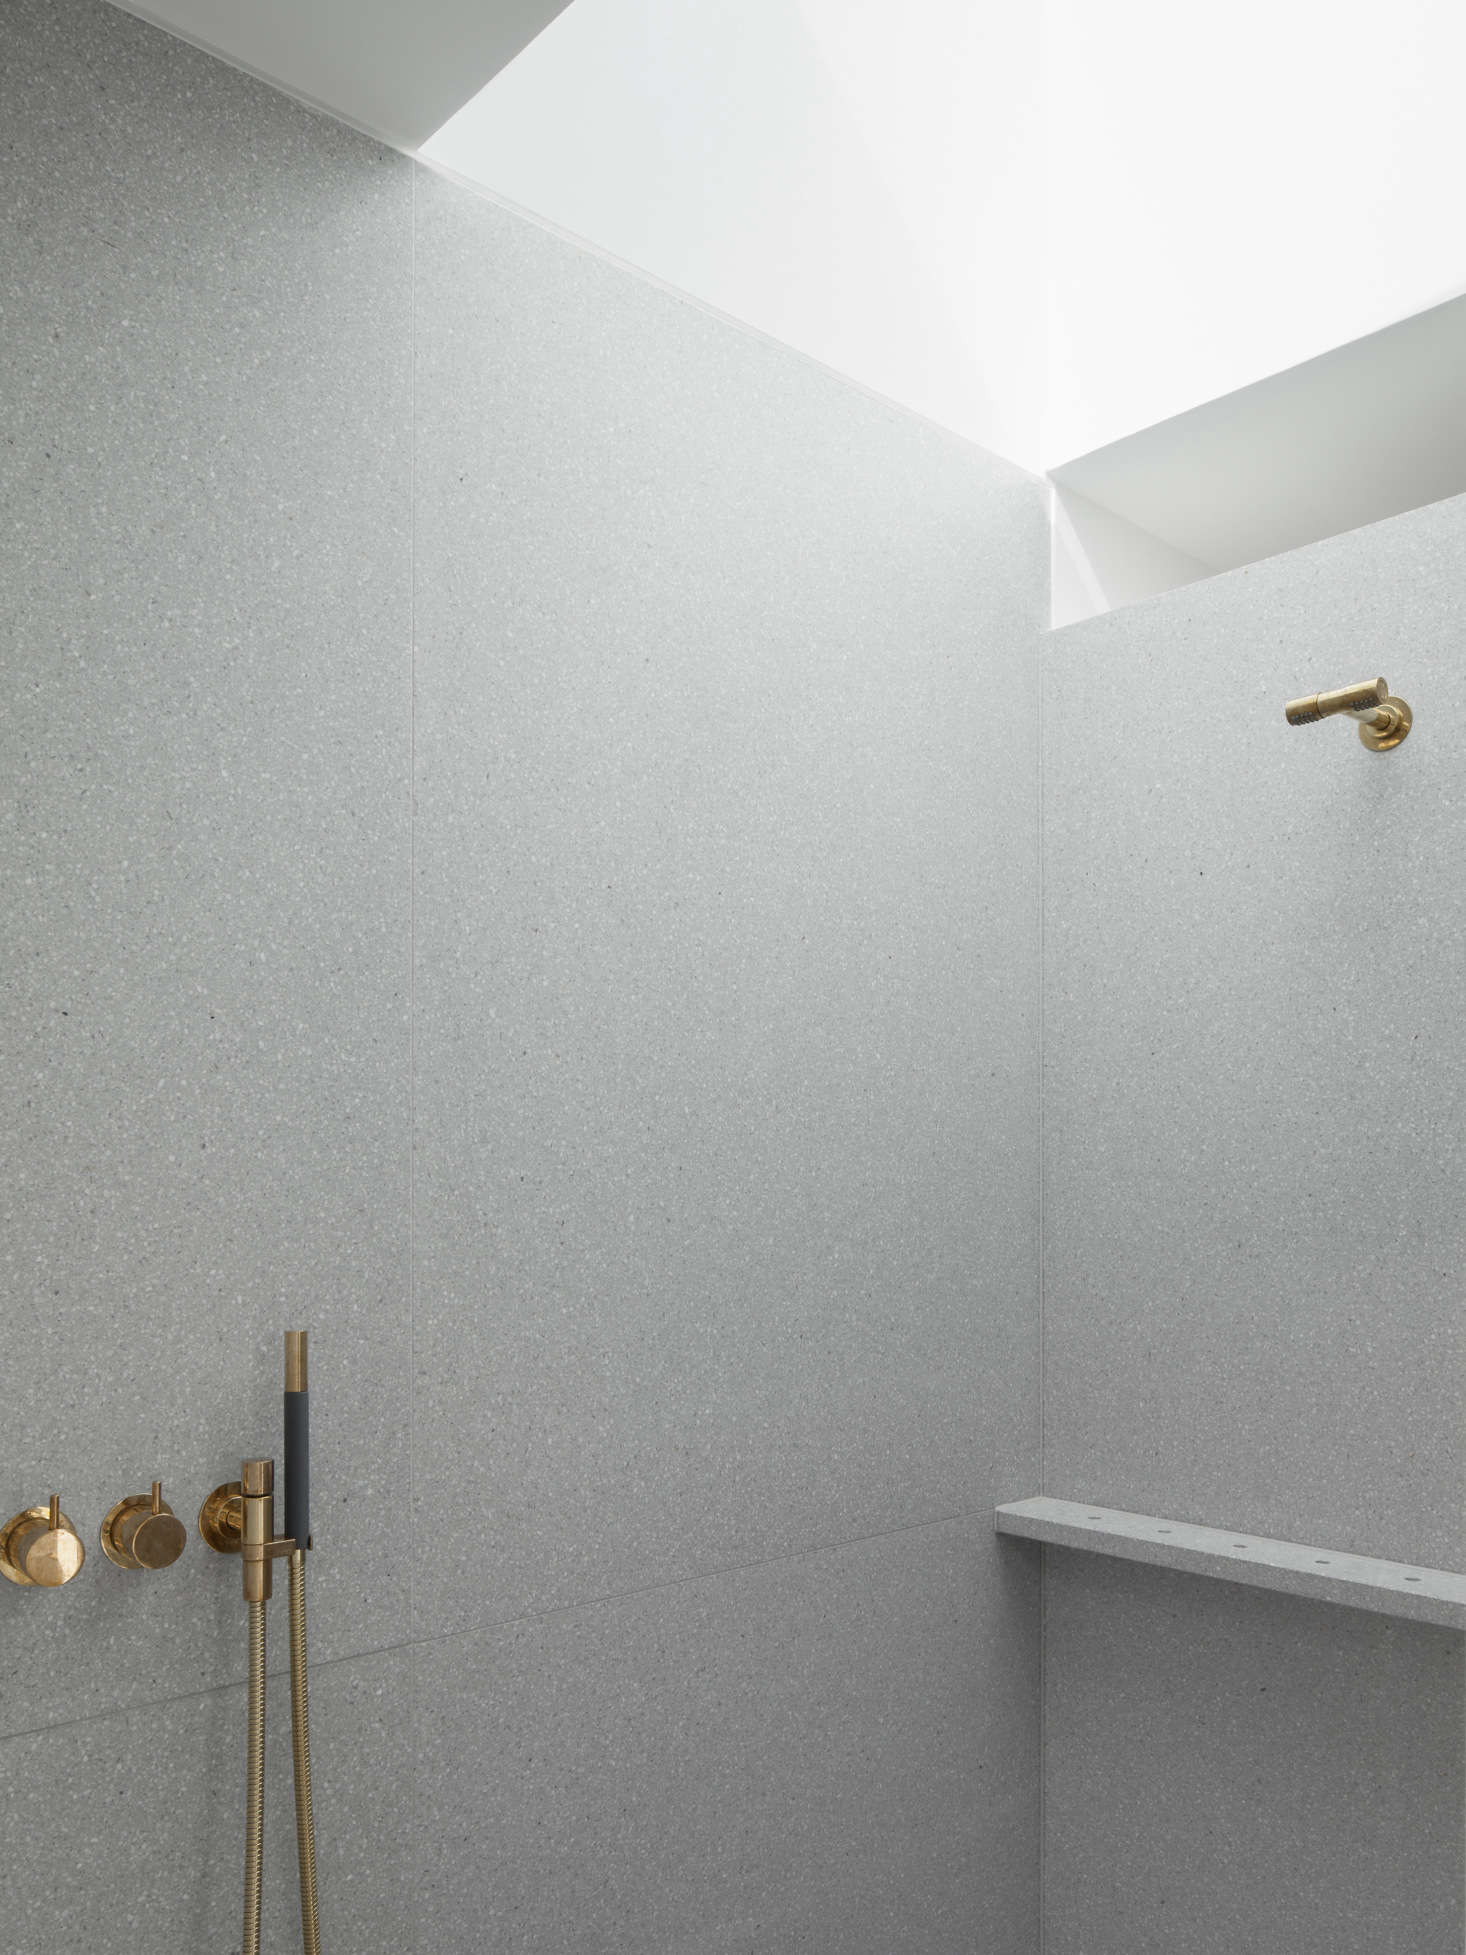 The shower is clad in Terrazzo Cement and outfitted with a Vola Thermostatic Mixer (547src=